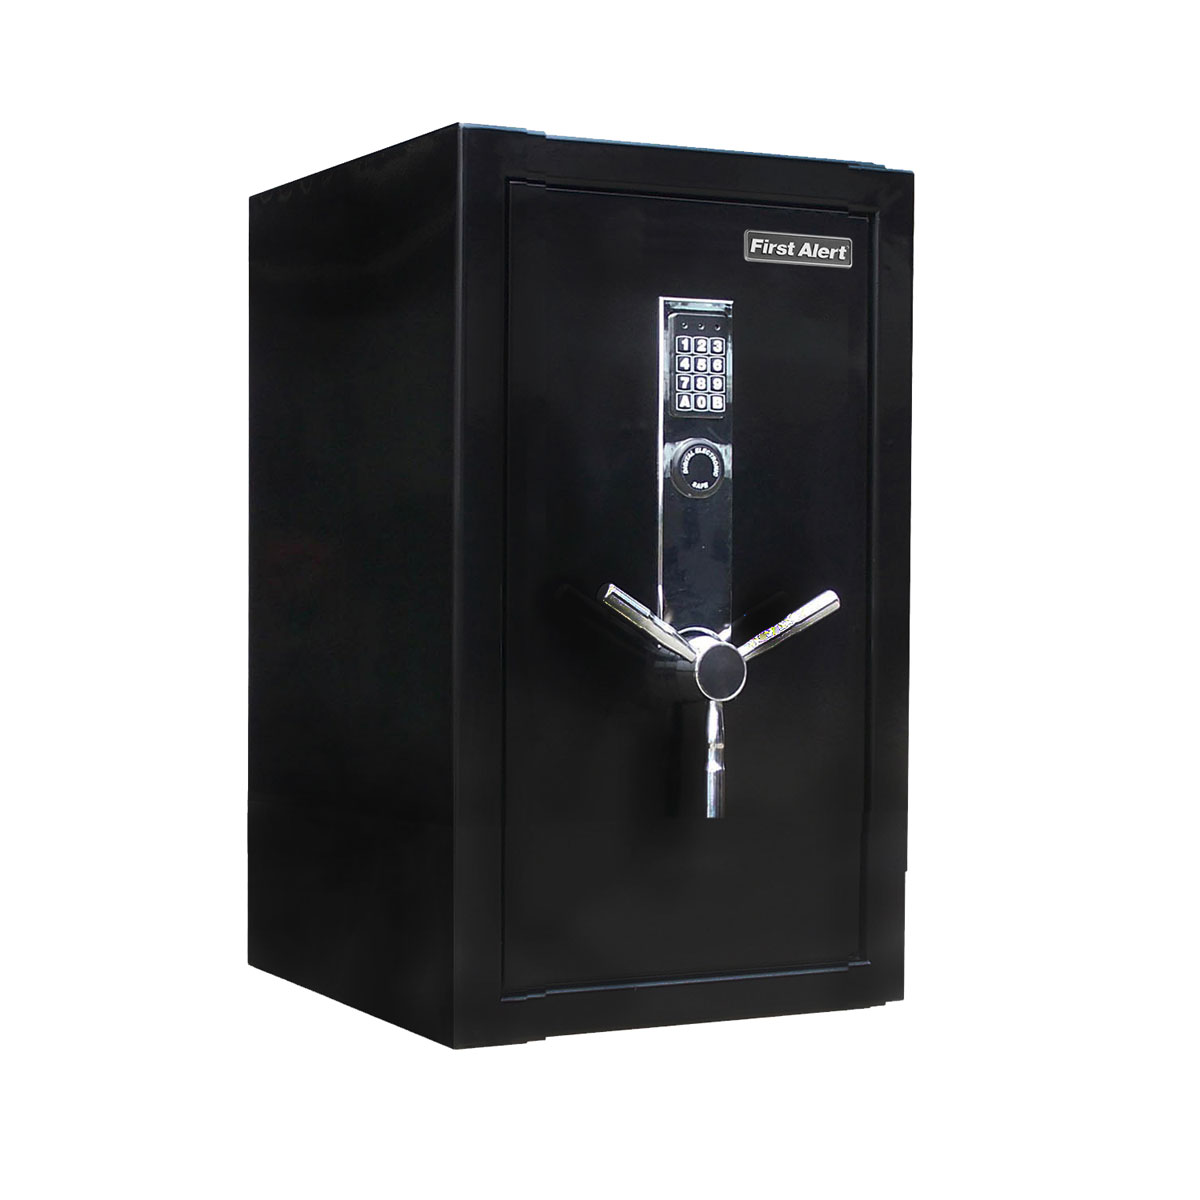 First Alert 2484DF 3.5 Cubic Ft. Digital Anti-Theft Executive Fire Safe